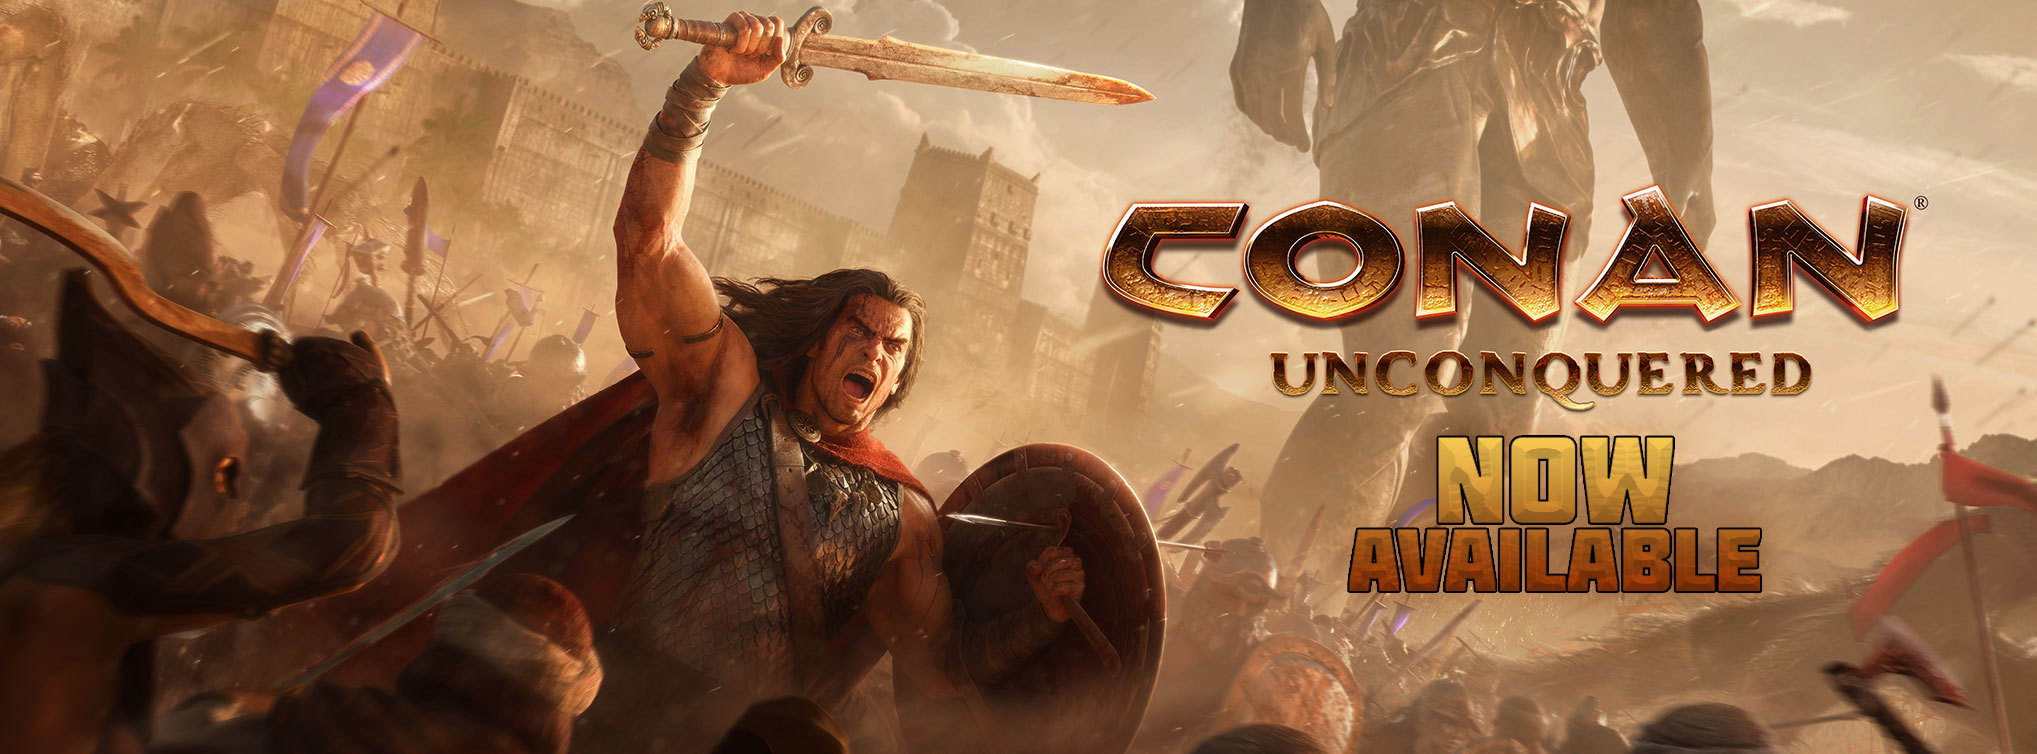 Jun 1 Conan Unconquered Game Update (Patch Notes for